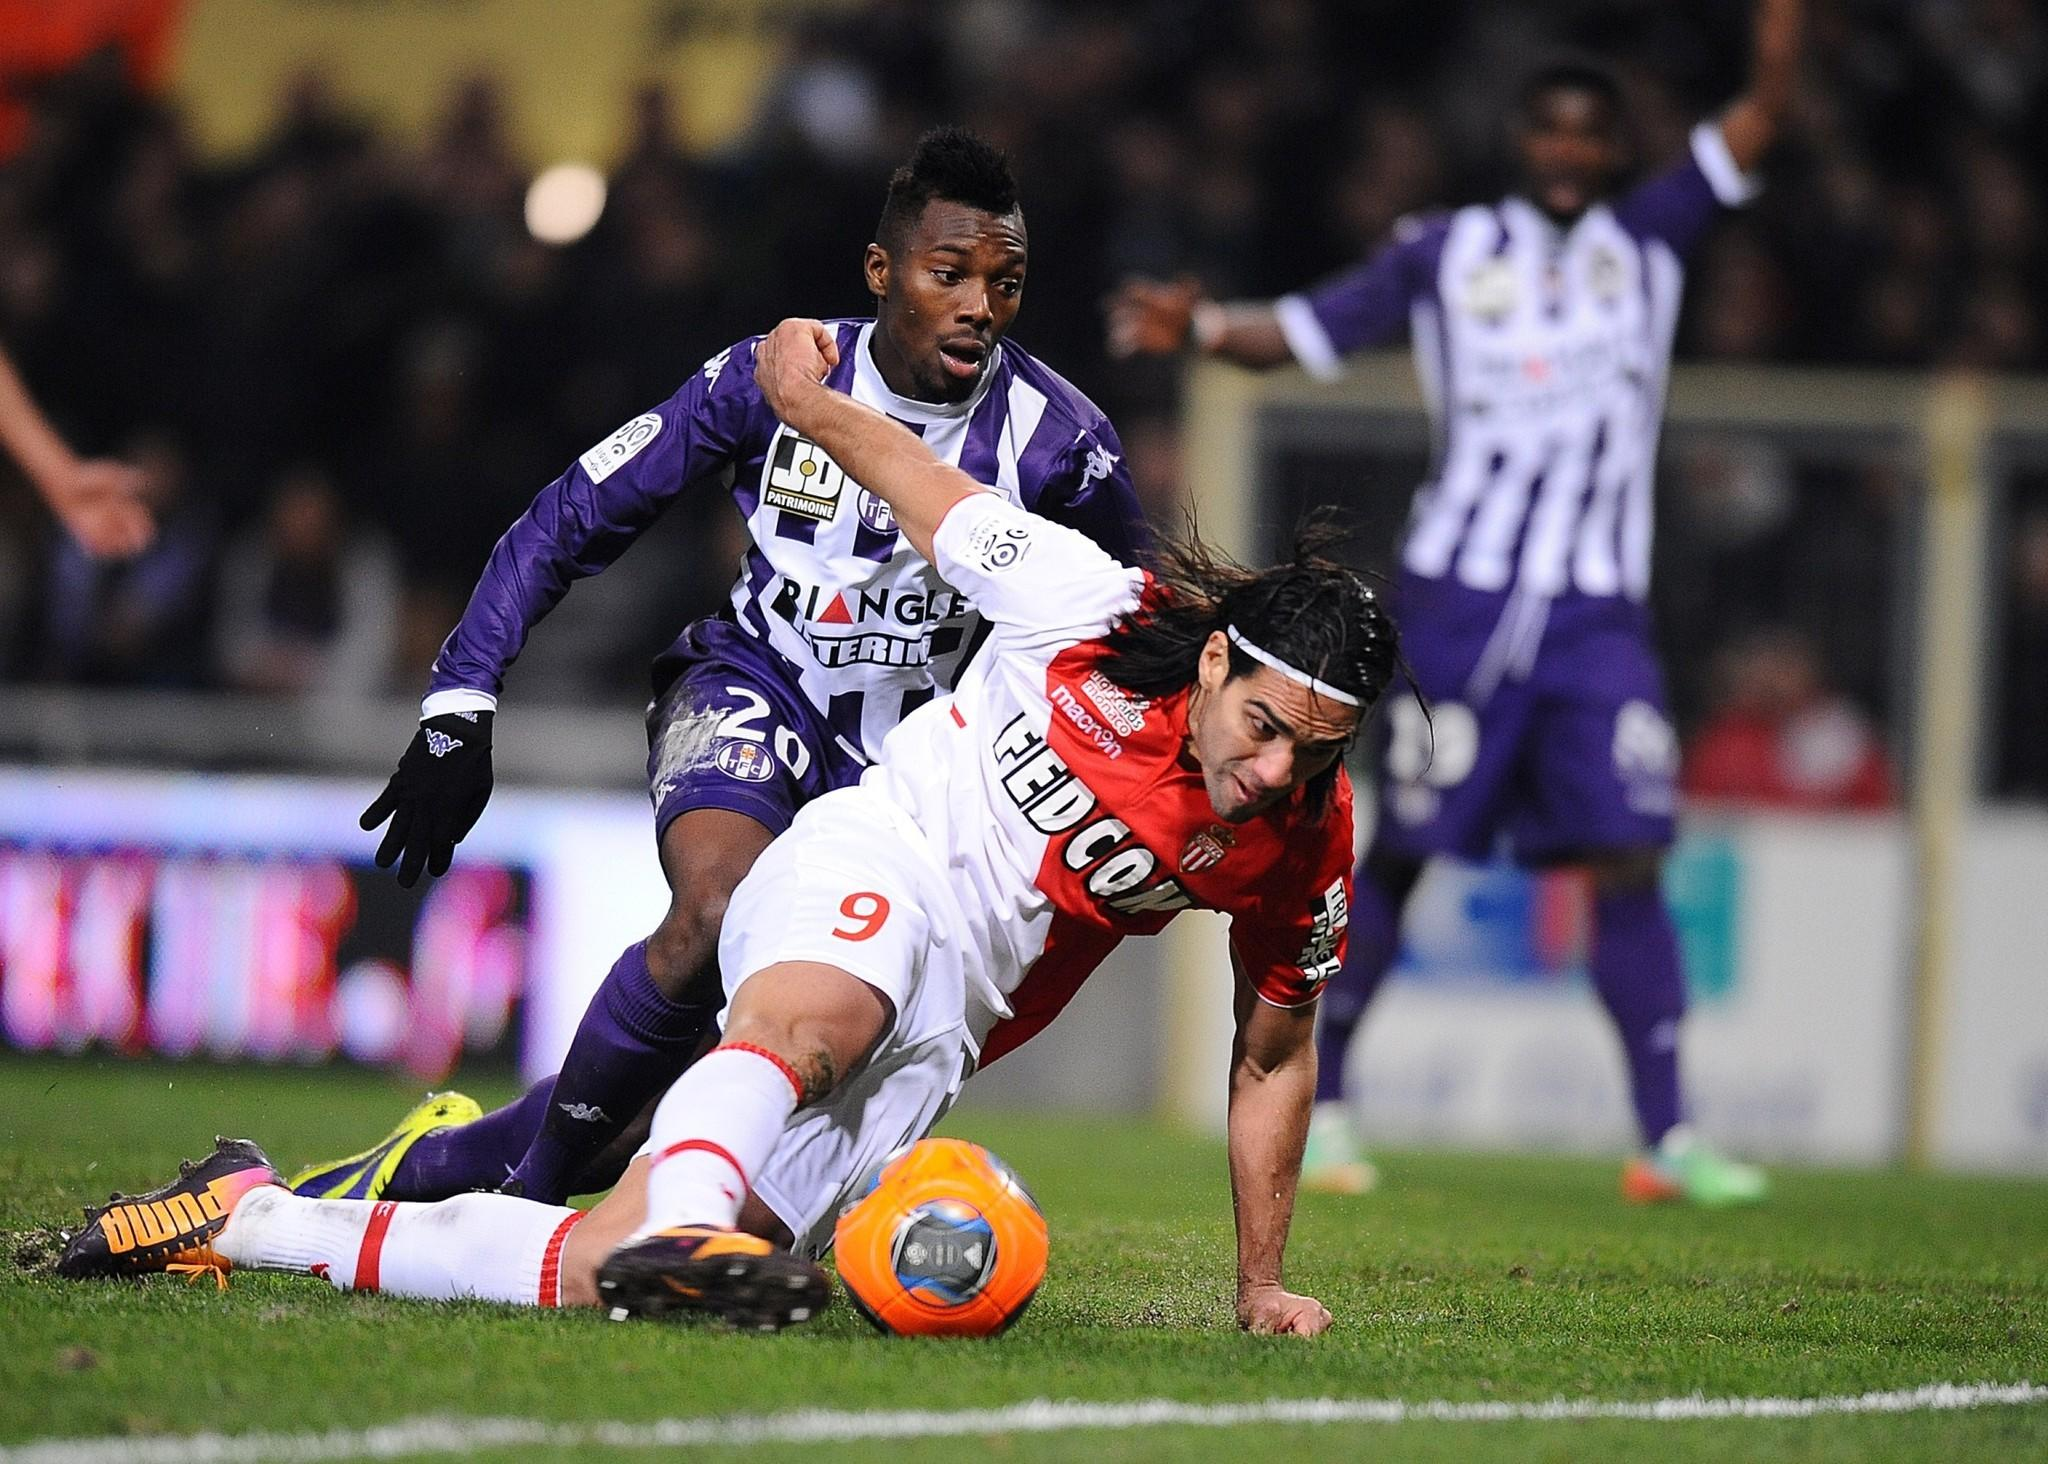 Monaco's Colombian forward Radamel Falcao controls the ball on his way to strike during the French L1 football match Toulouse vs Monaco on January 19, 2014 at the municipal stadium in Toulouse.